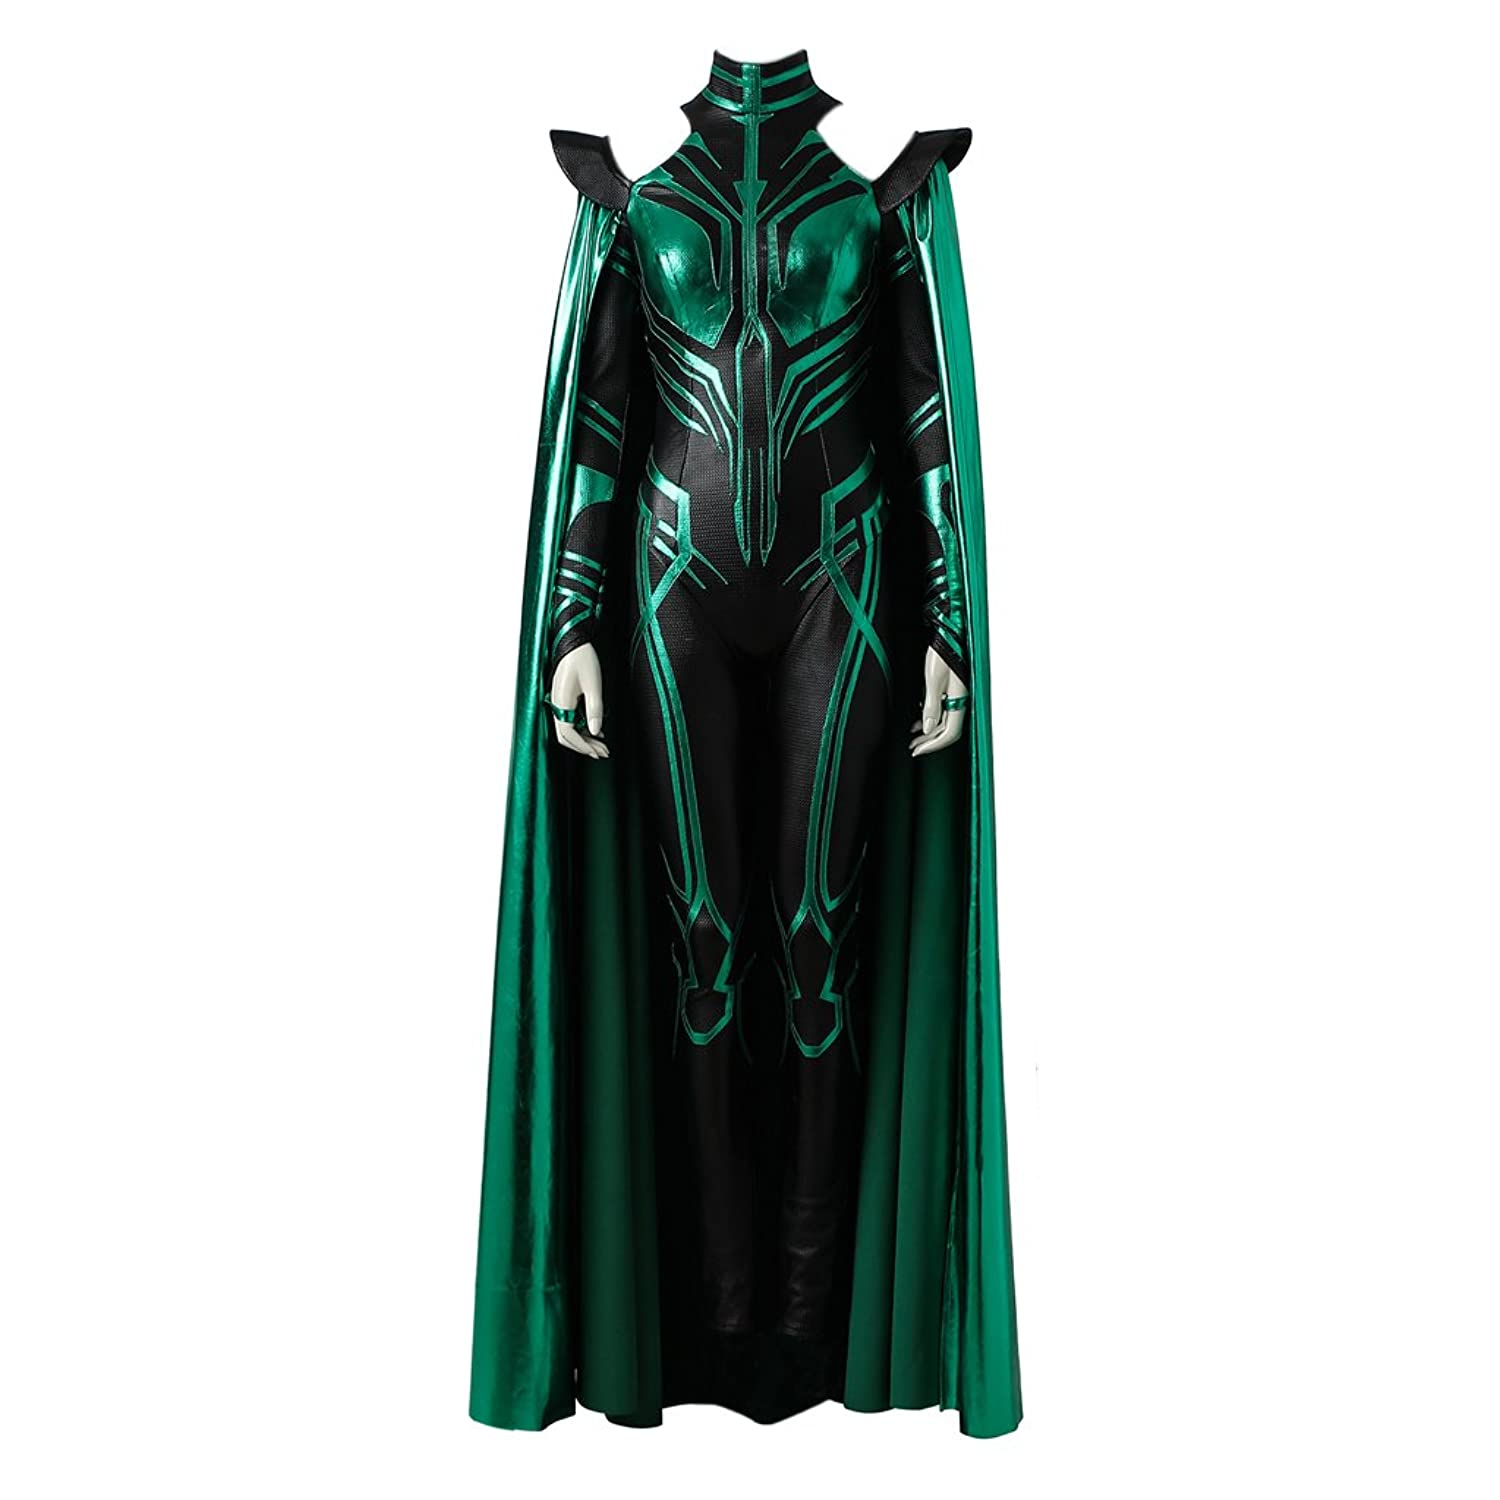 Women's Hela Jumpsuit and Cloak Costume by CosplayDiy - DeluxeAdultCostumes.com